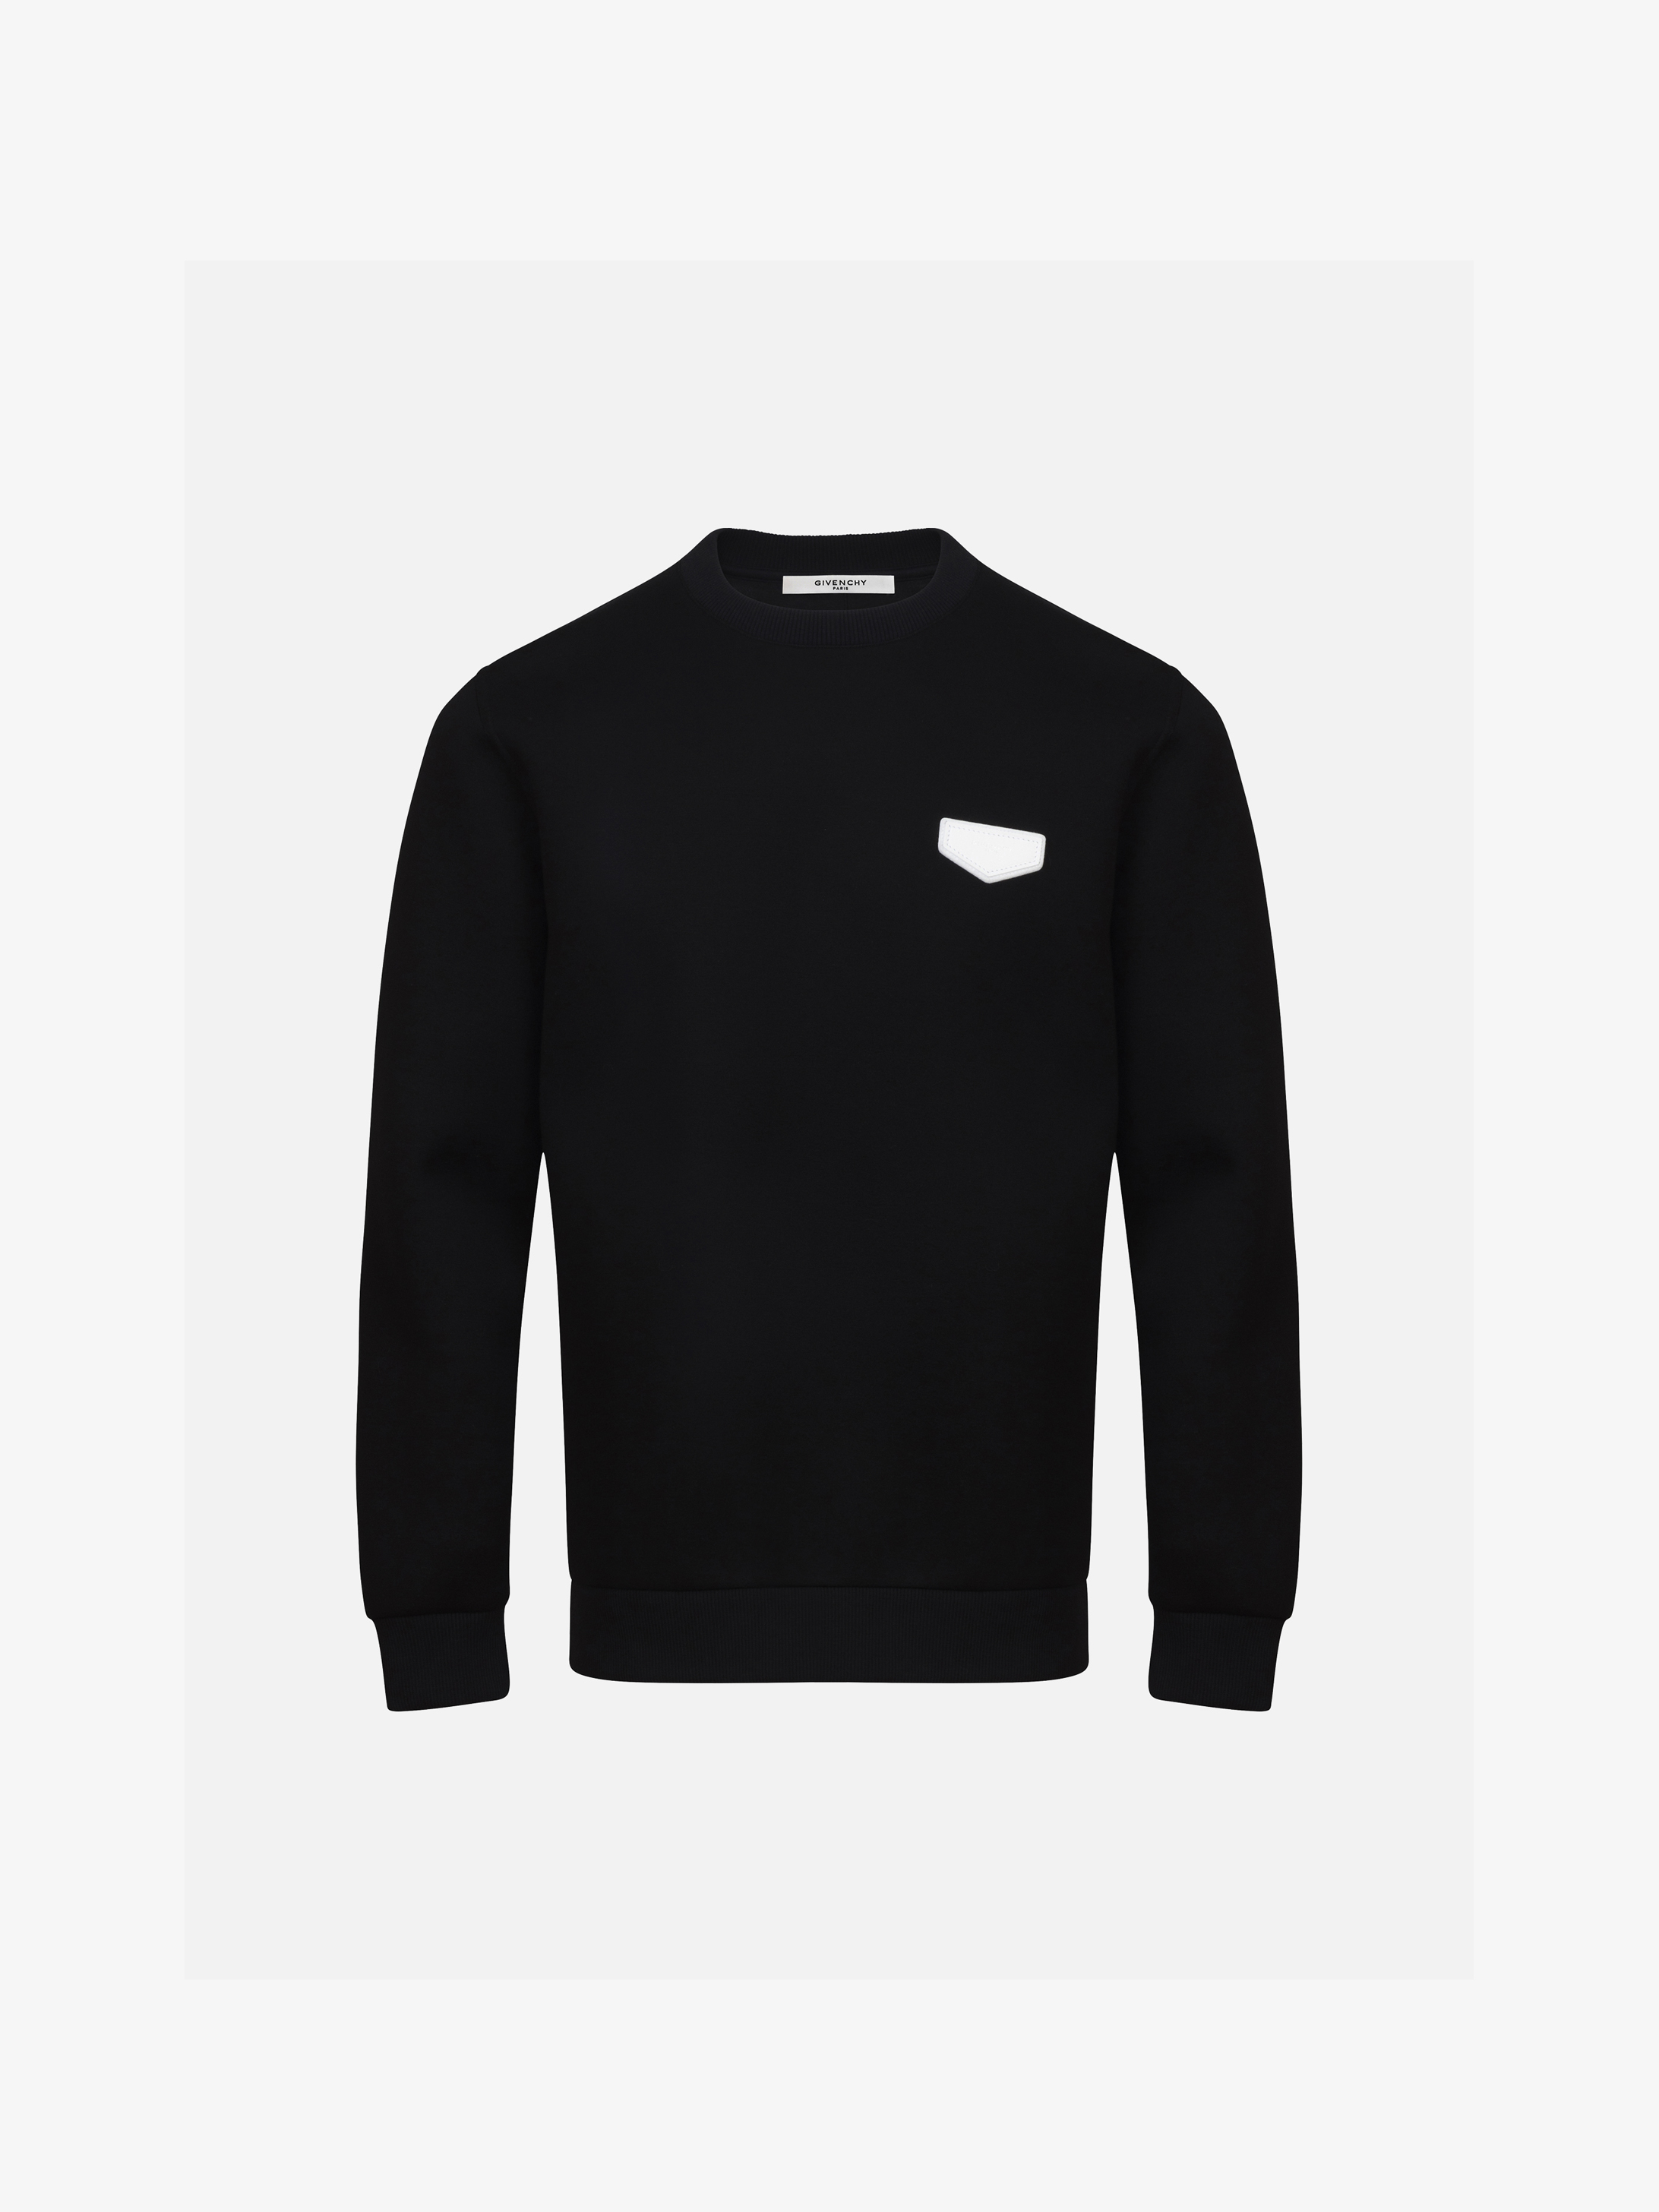 GIVENCHY patch sweatshirt in neoprene